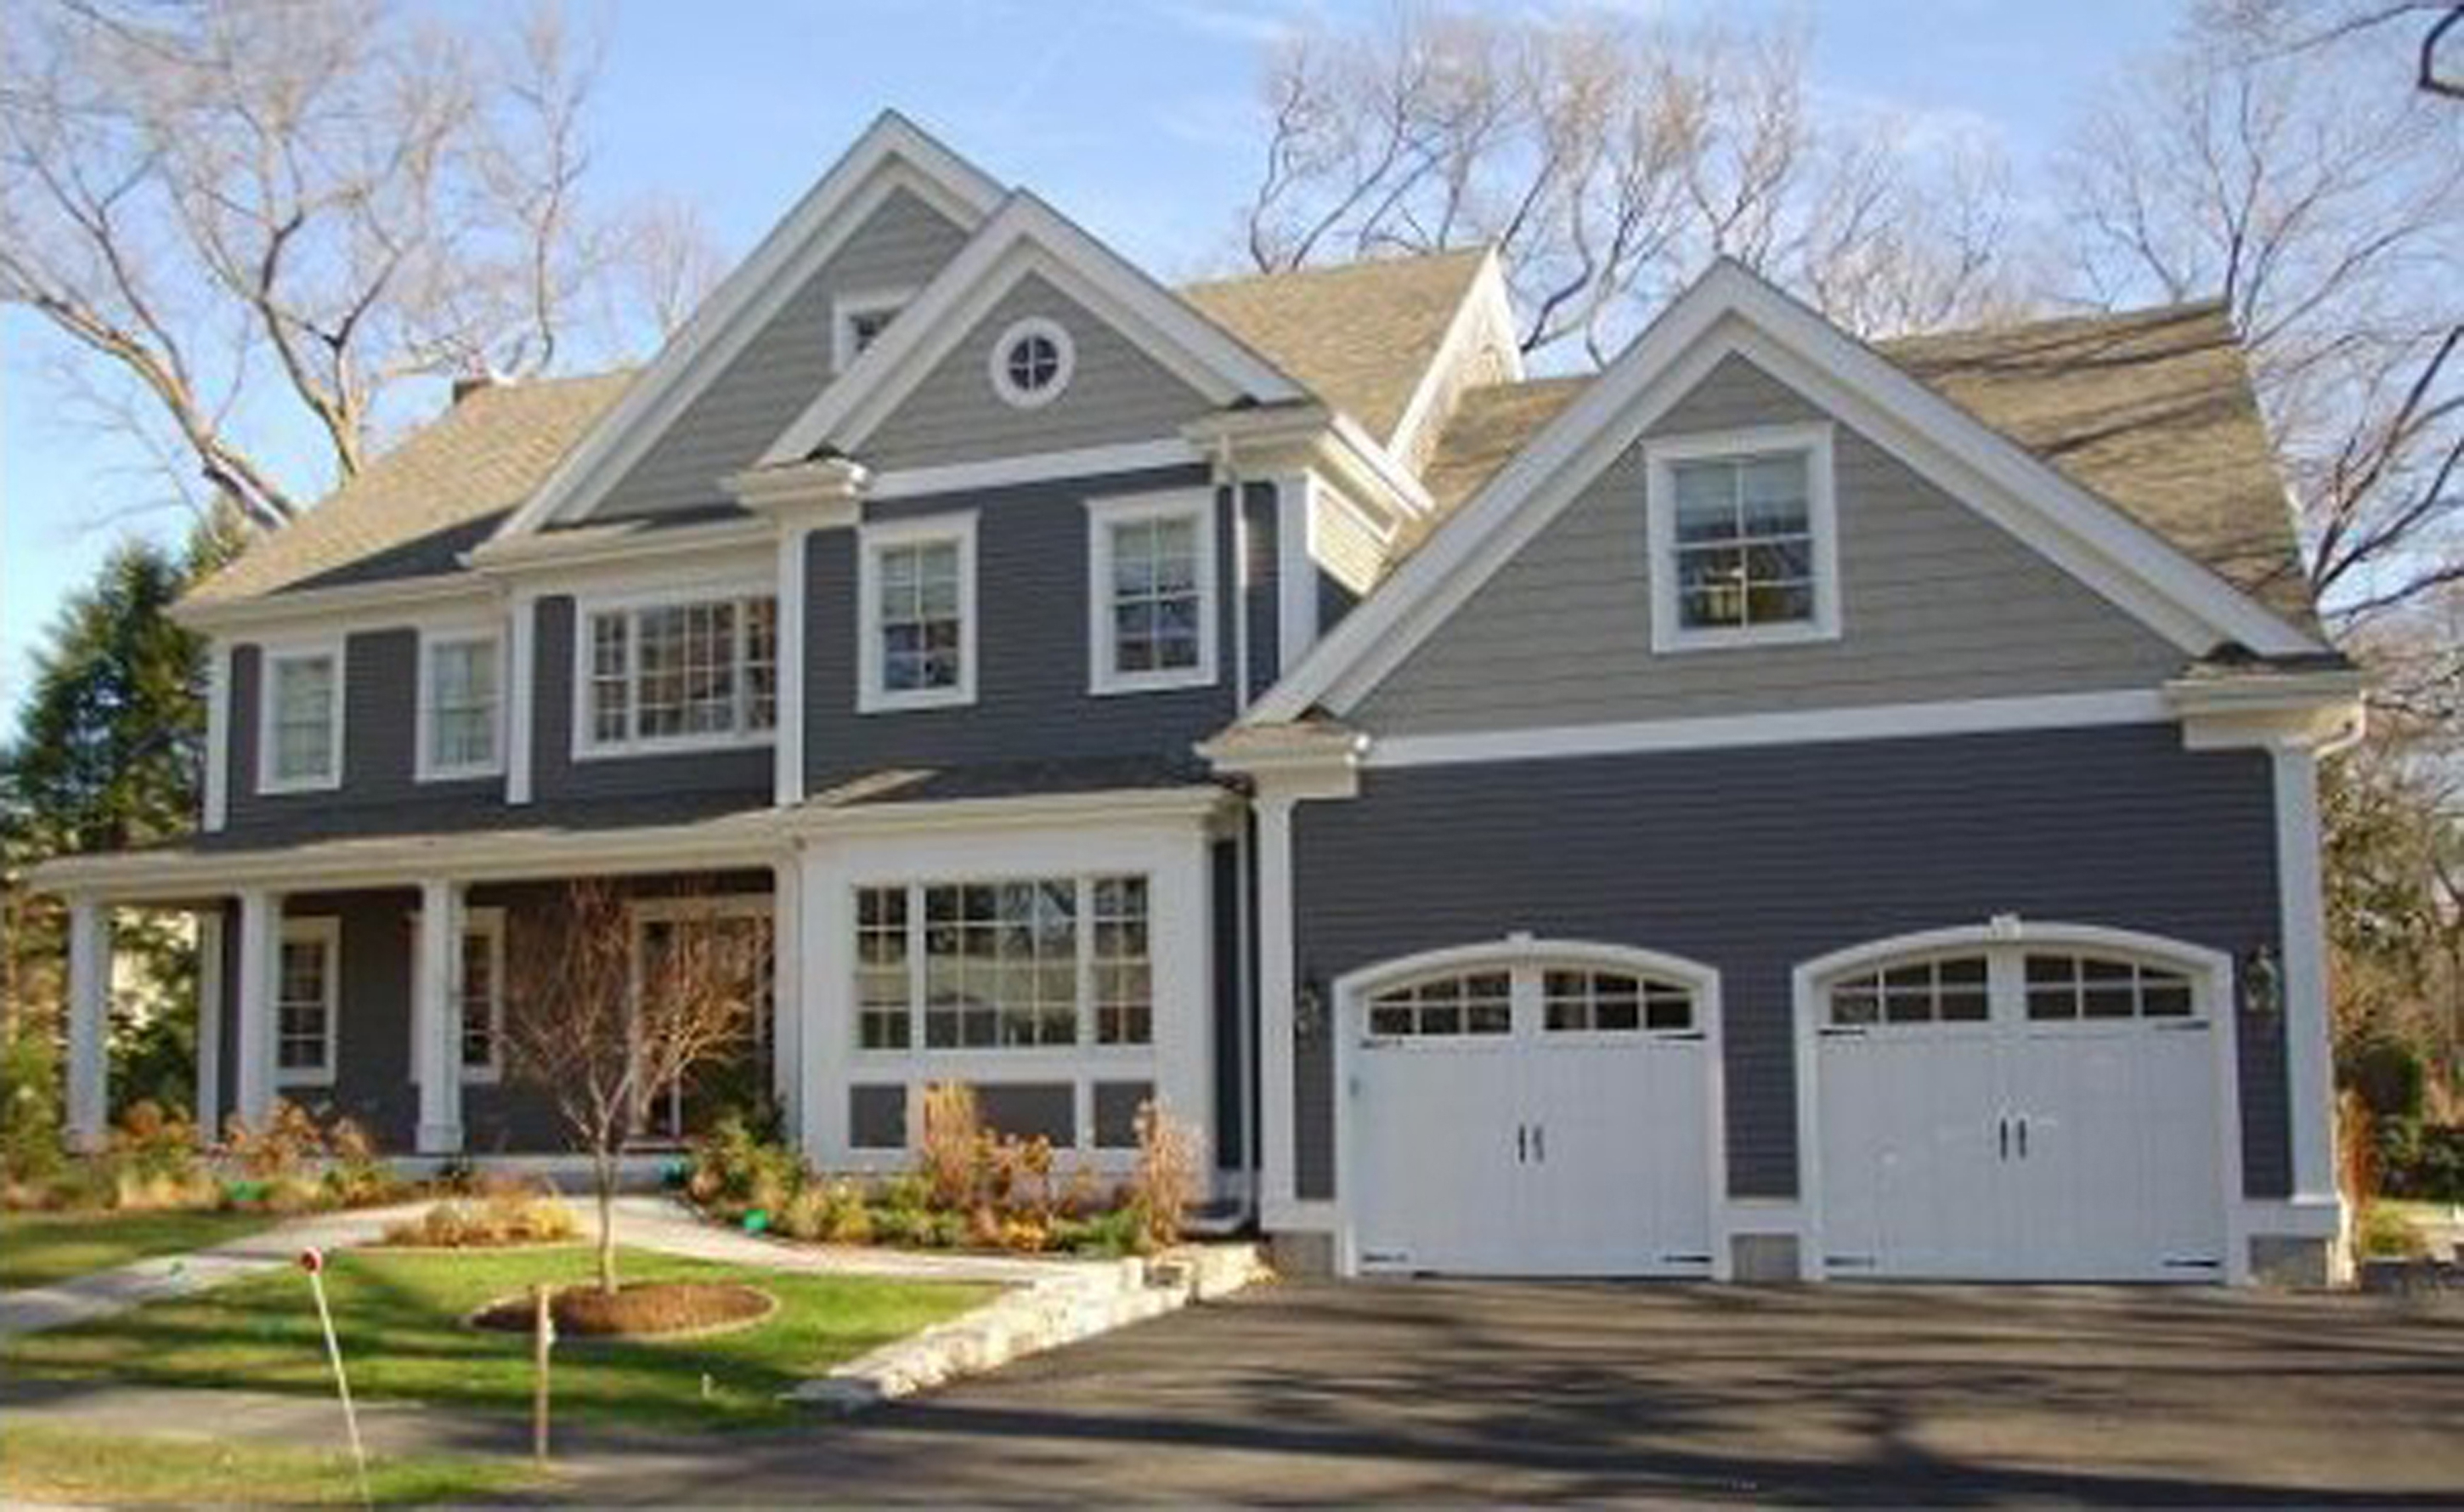 Luxurious Gray House Exterior Paint Idea With White Garage Doors And White Window Frames Beautiful House Exterior Paint Ideas (Image 8 of 123)